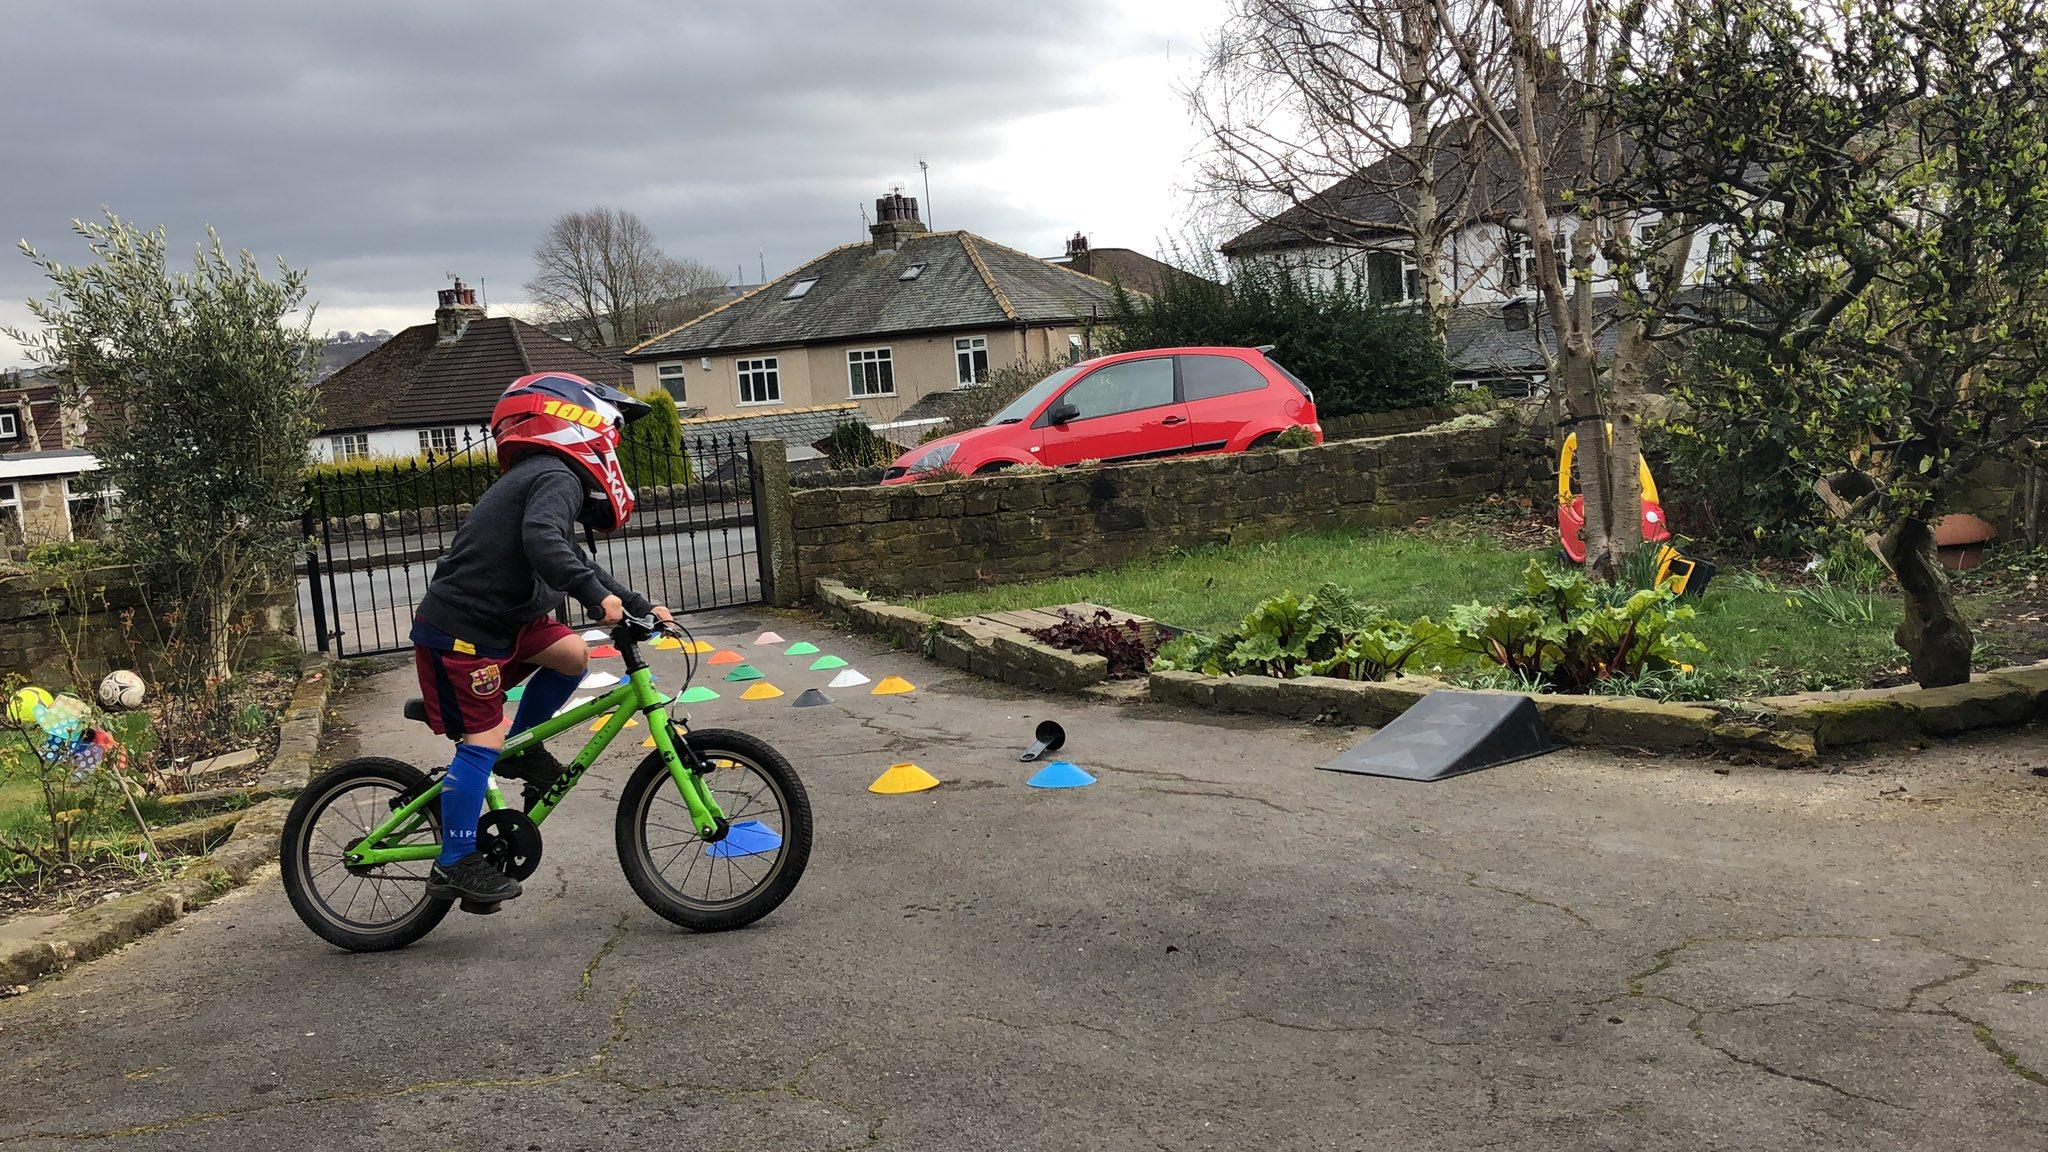 picture of emily groves son riding around cones in a back garden bike skills course set up by emily